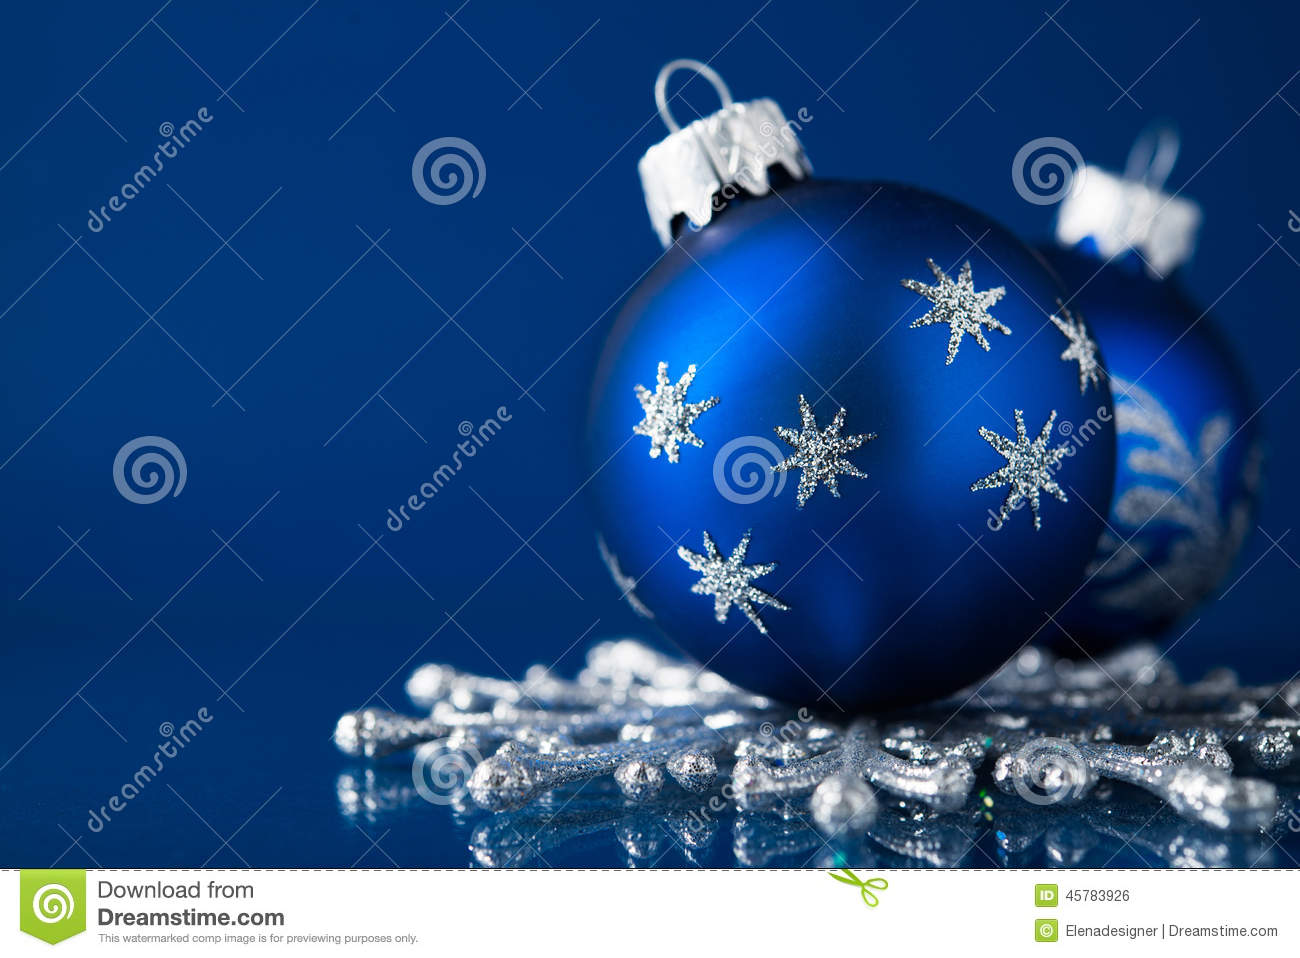 blue and silver christmas ornaments on dark blue background with space for text